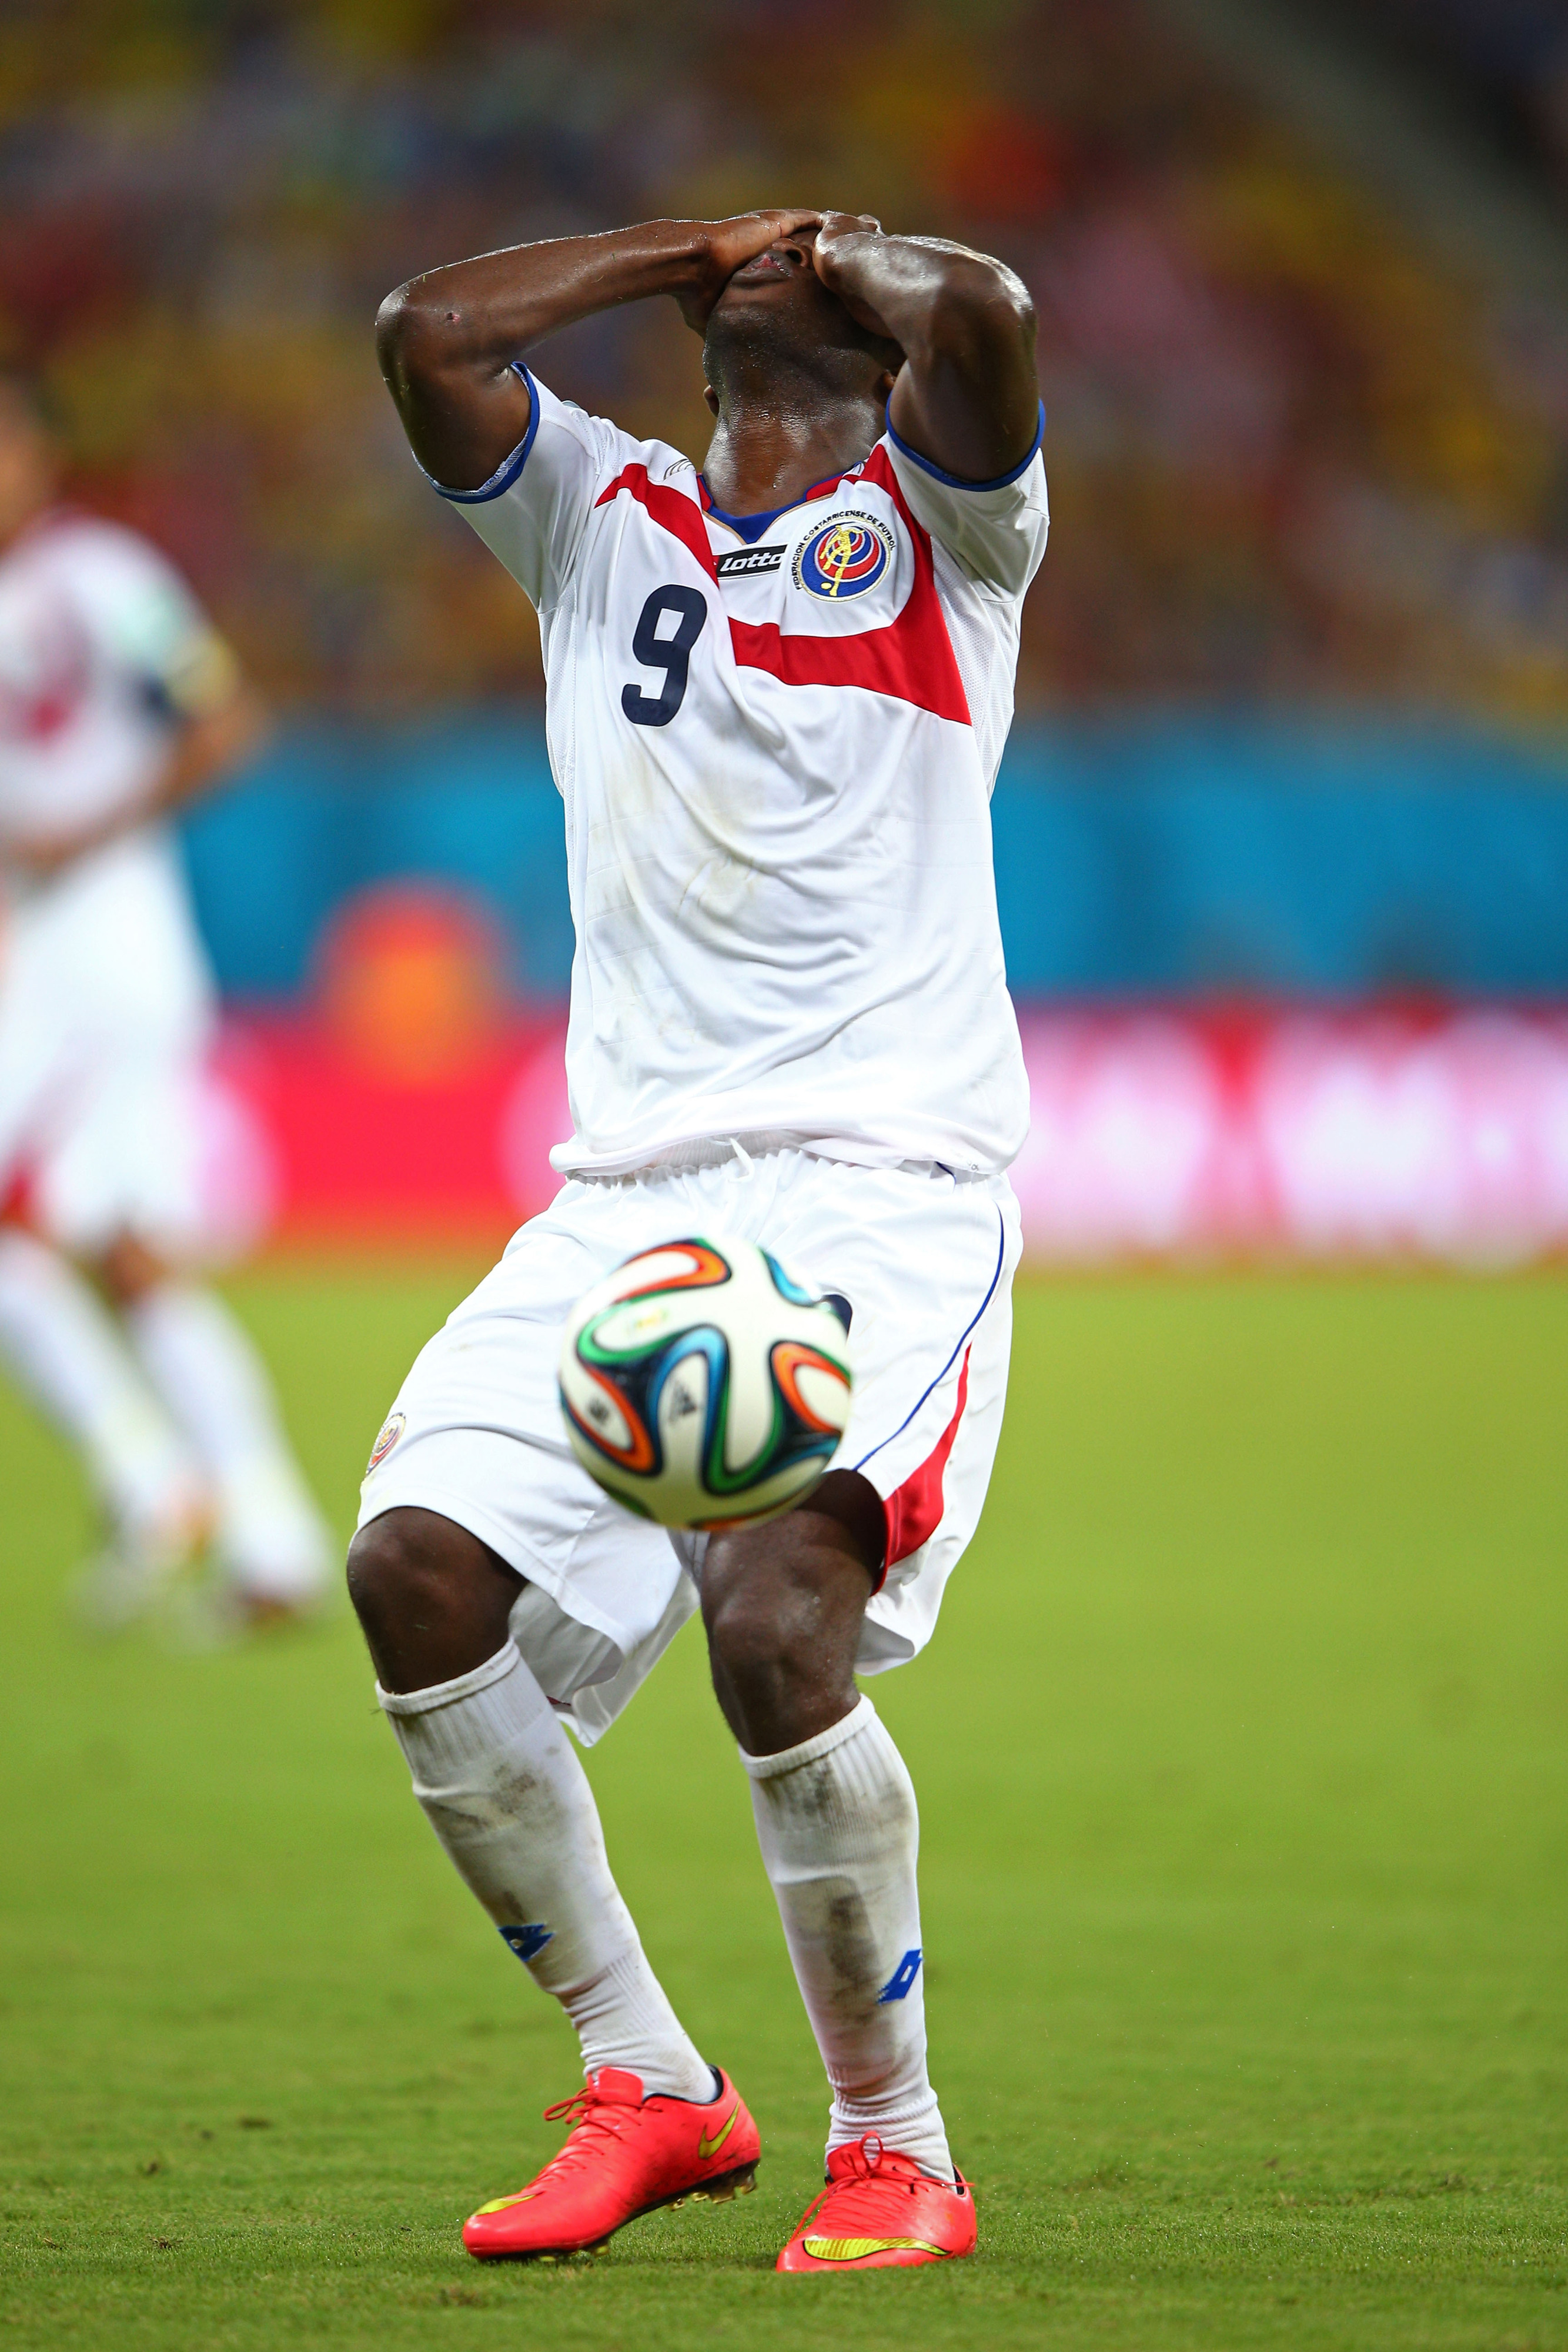 Joel Campbell would like a new pair of legs, please.